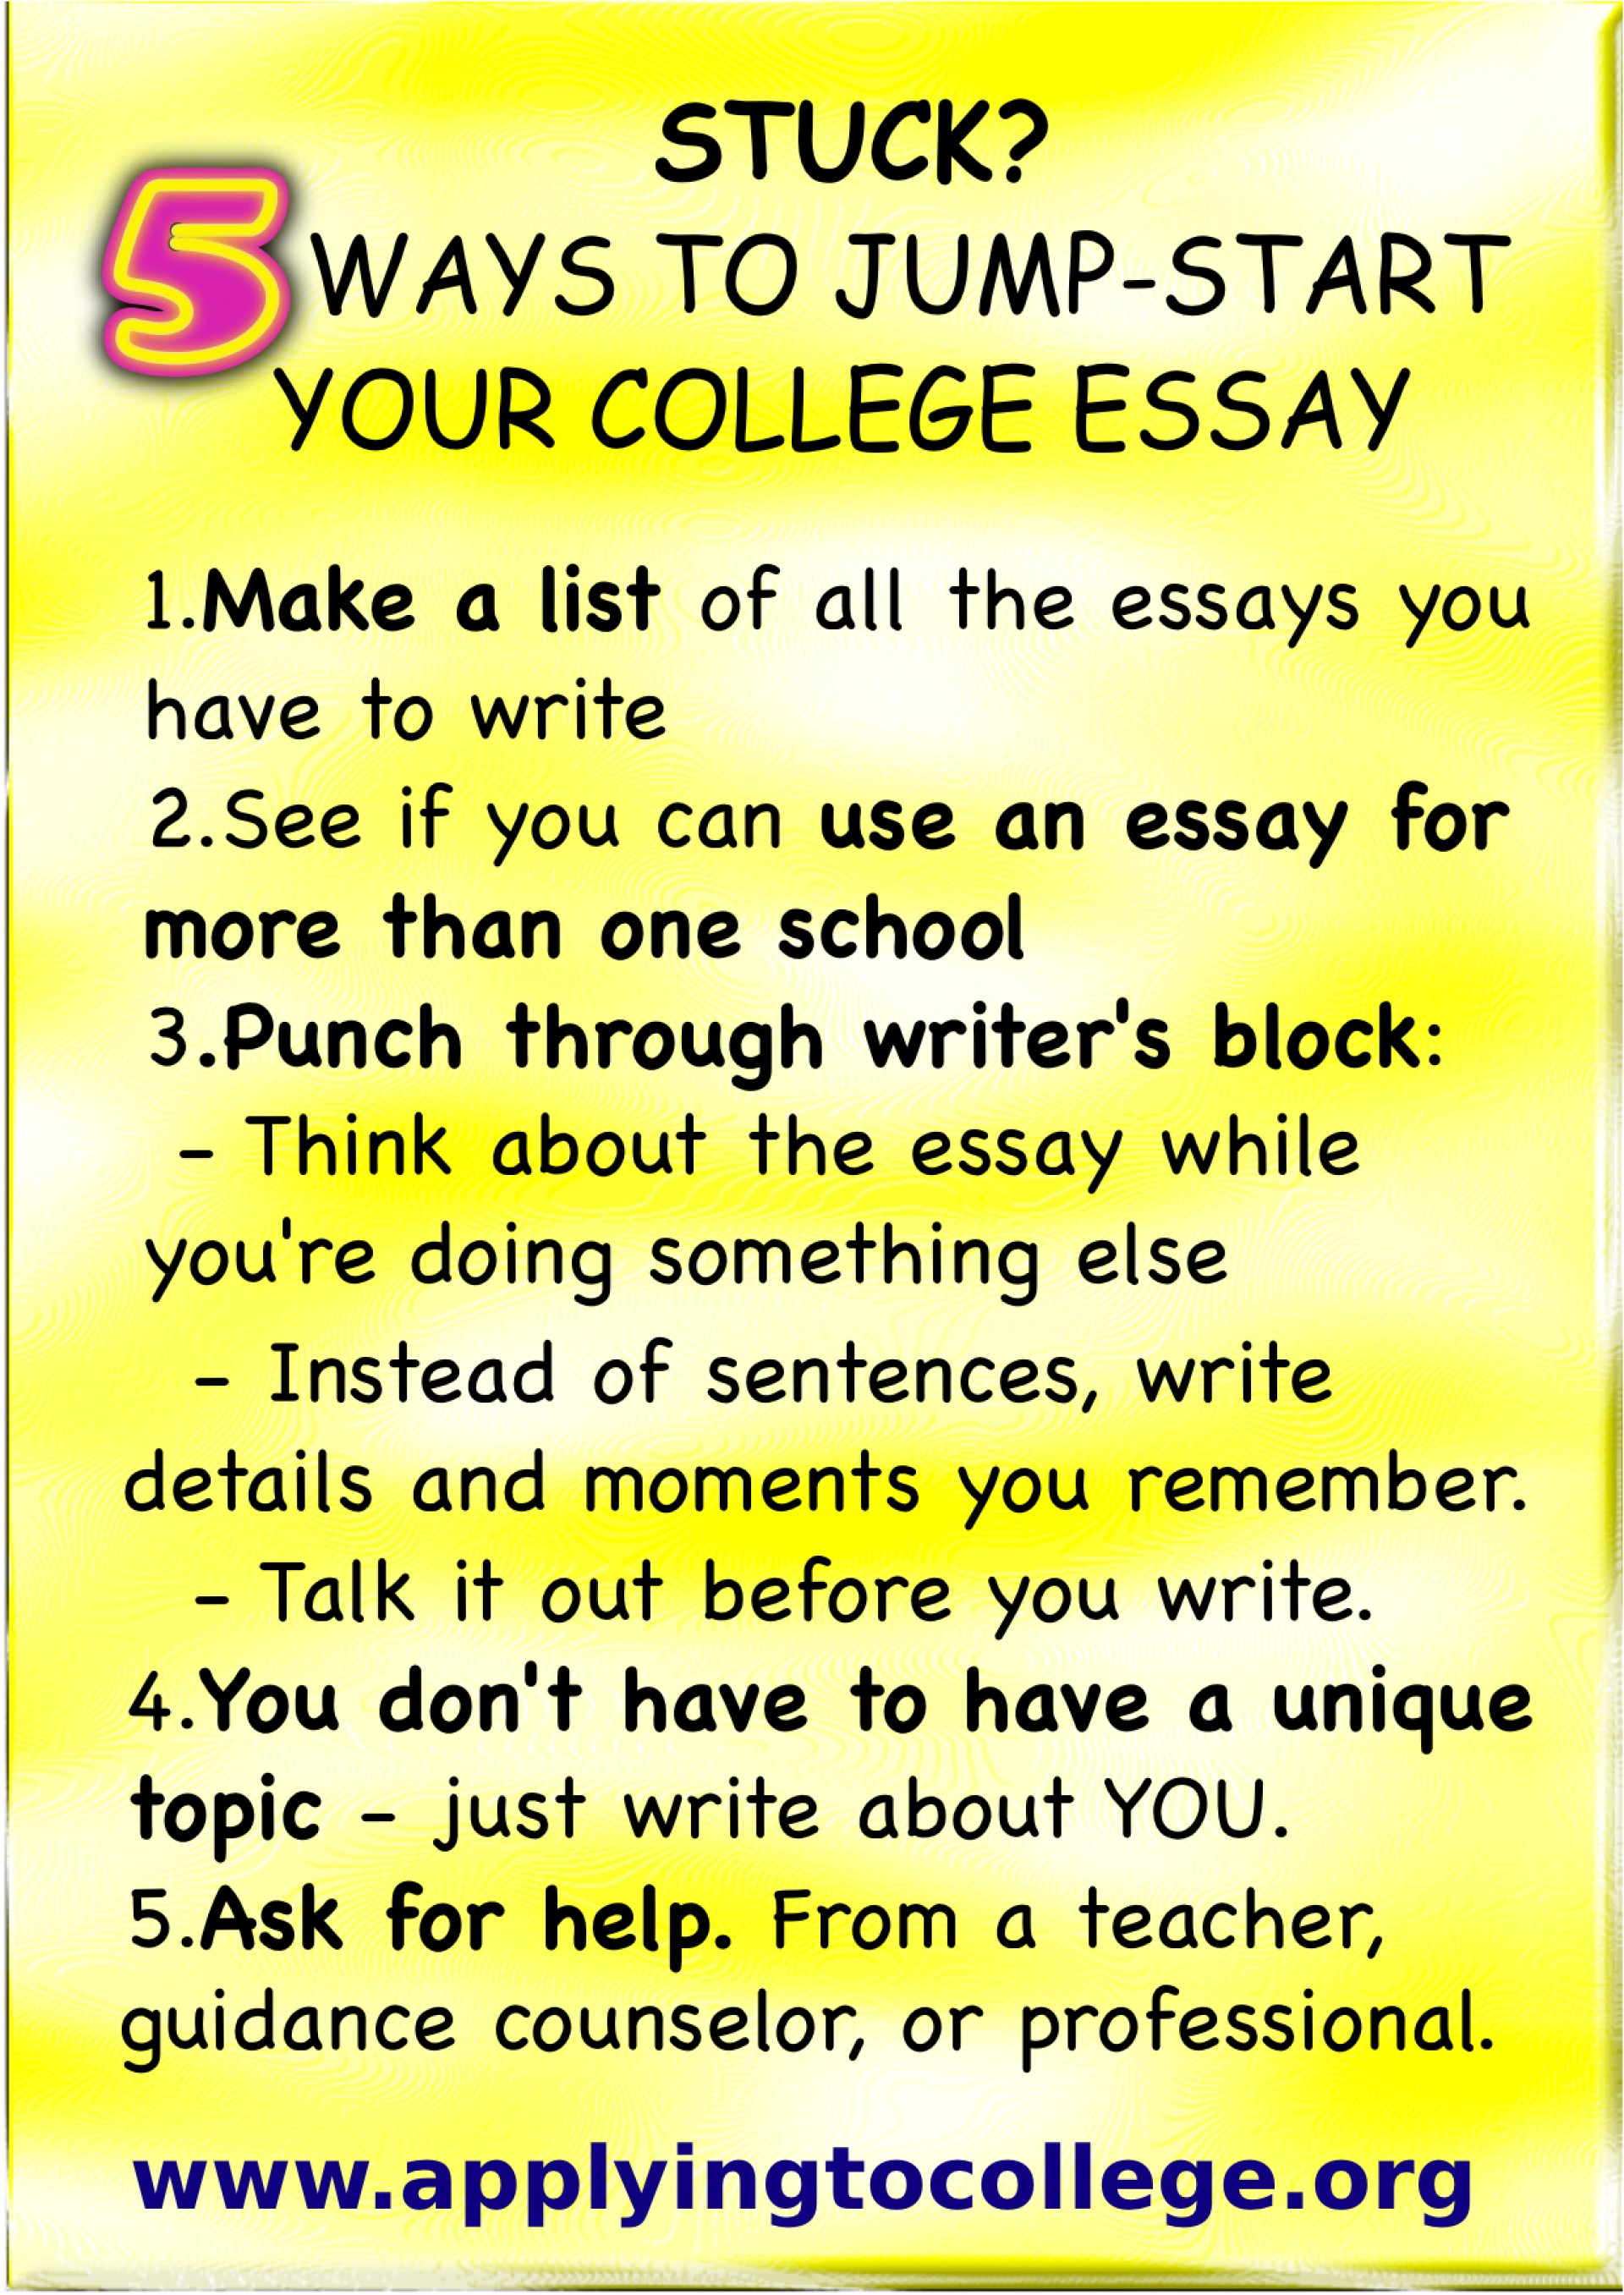 008 Good Way To Start An Essay Stuck Tips Jump Your College Applying Ways Essays L Striking About A Book Racism Different 1920